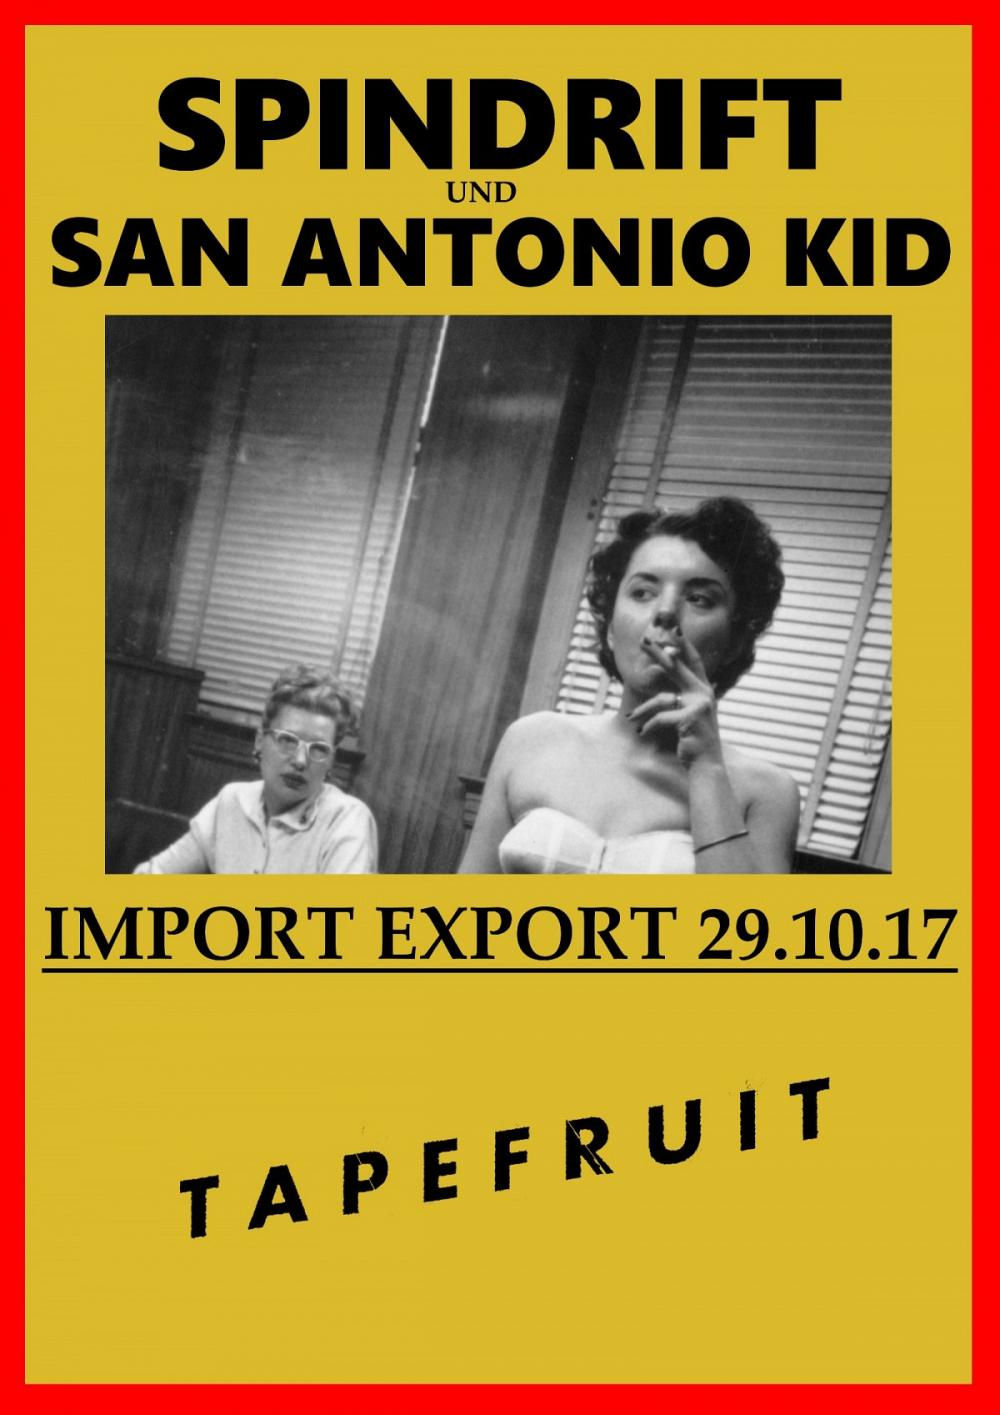 Tapefruit Konzert: Spindrift + San Antonio Kid | 29.10.2017 @ Import Export